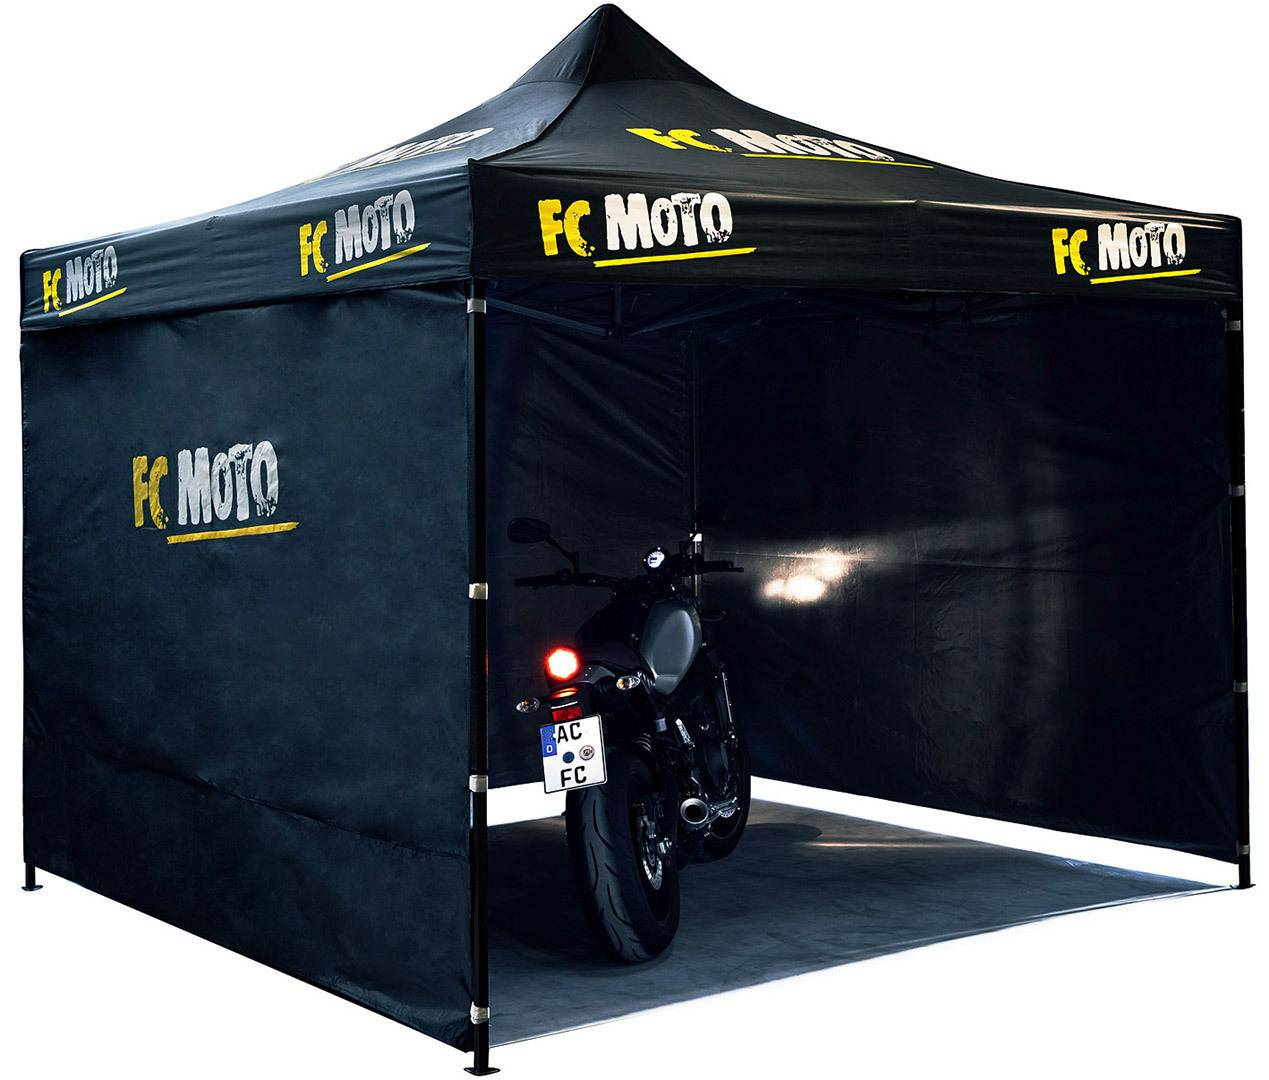 FC-Moto 3 x 3 m Aluminum Tent with Side Walls Black One Size